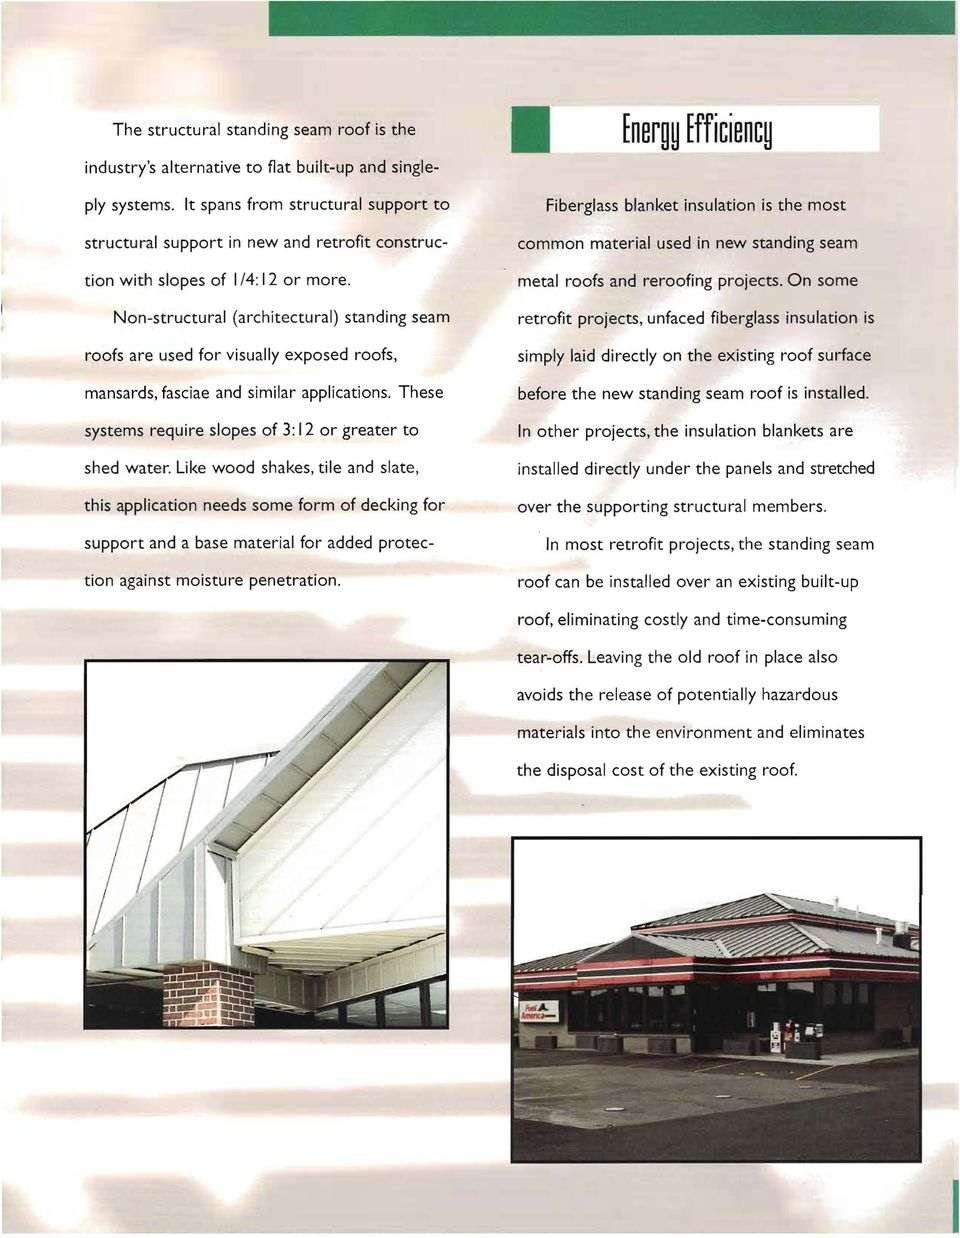 Non-structural (architectural) standing seam roofs are used for visually exposed roofs, mansards, fasciae and similar applications. These systems require slopes of 3: 12 or greater to shed water.